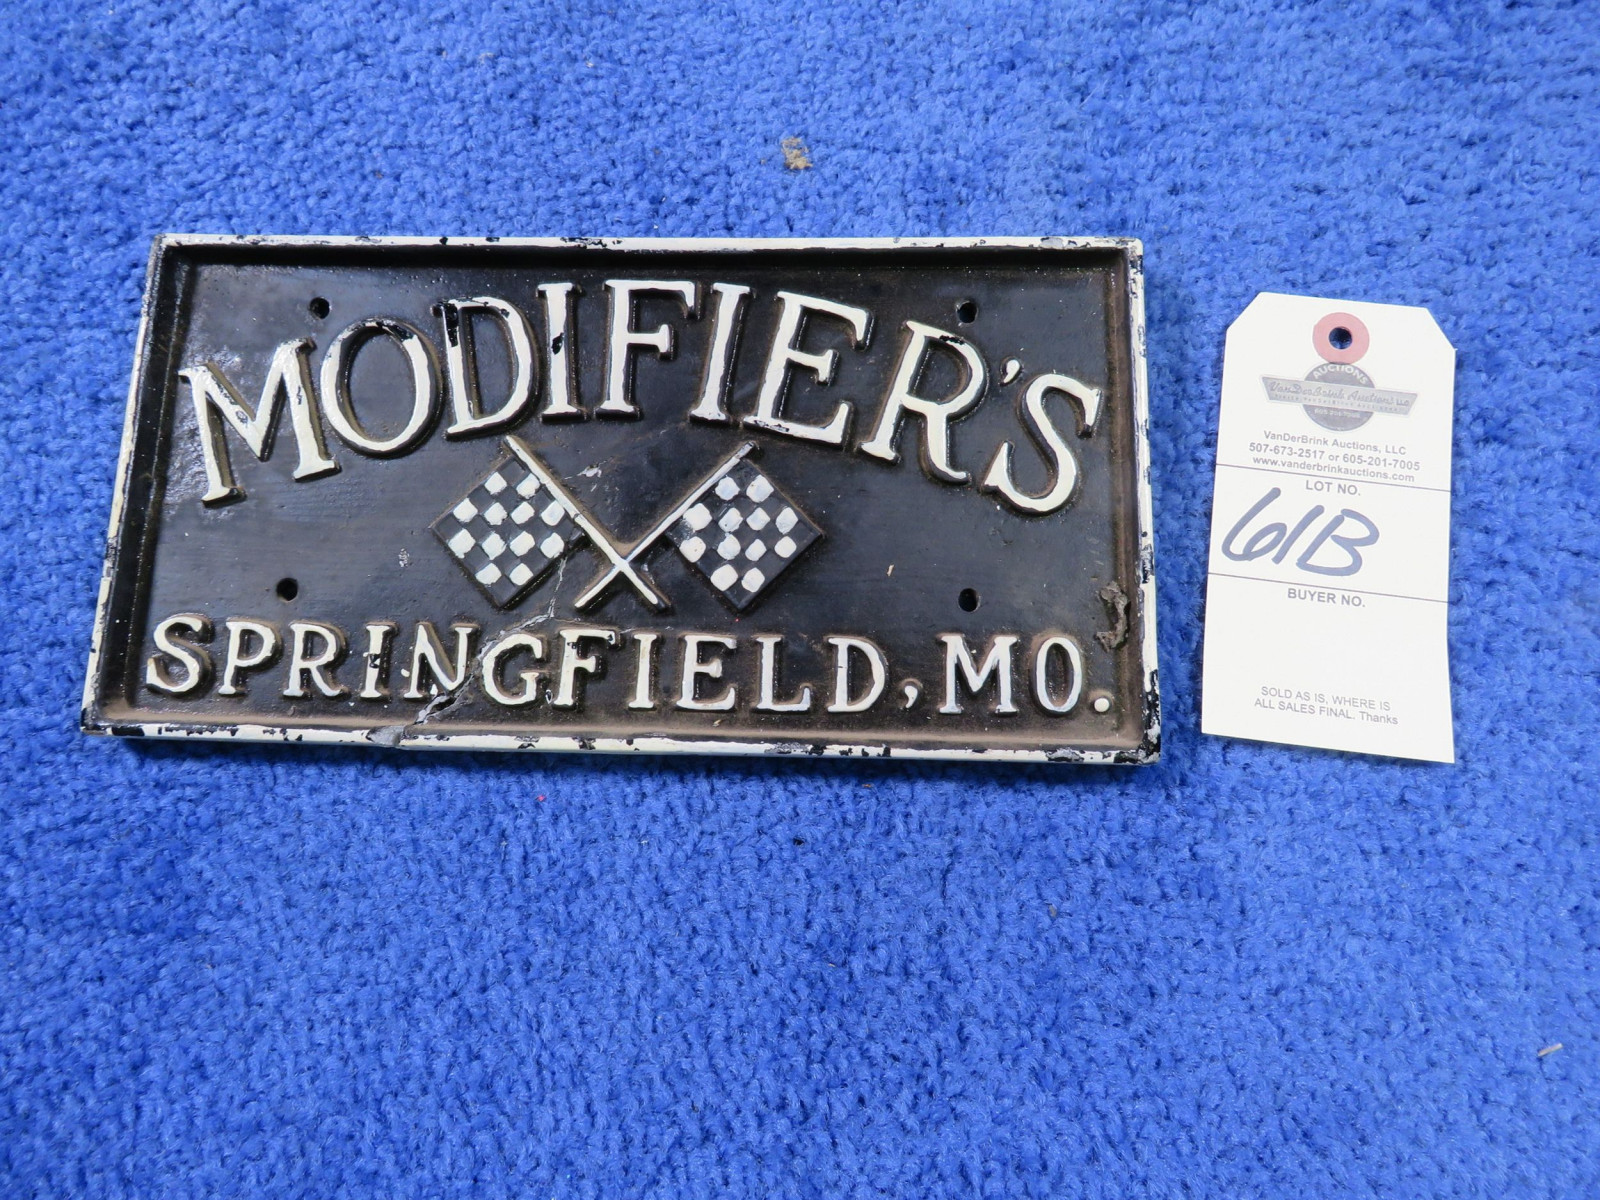 Modifiers Springfield, MO Vintage Vehicle Club Plate- Pot Metal - Image 1